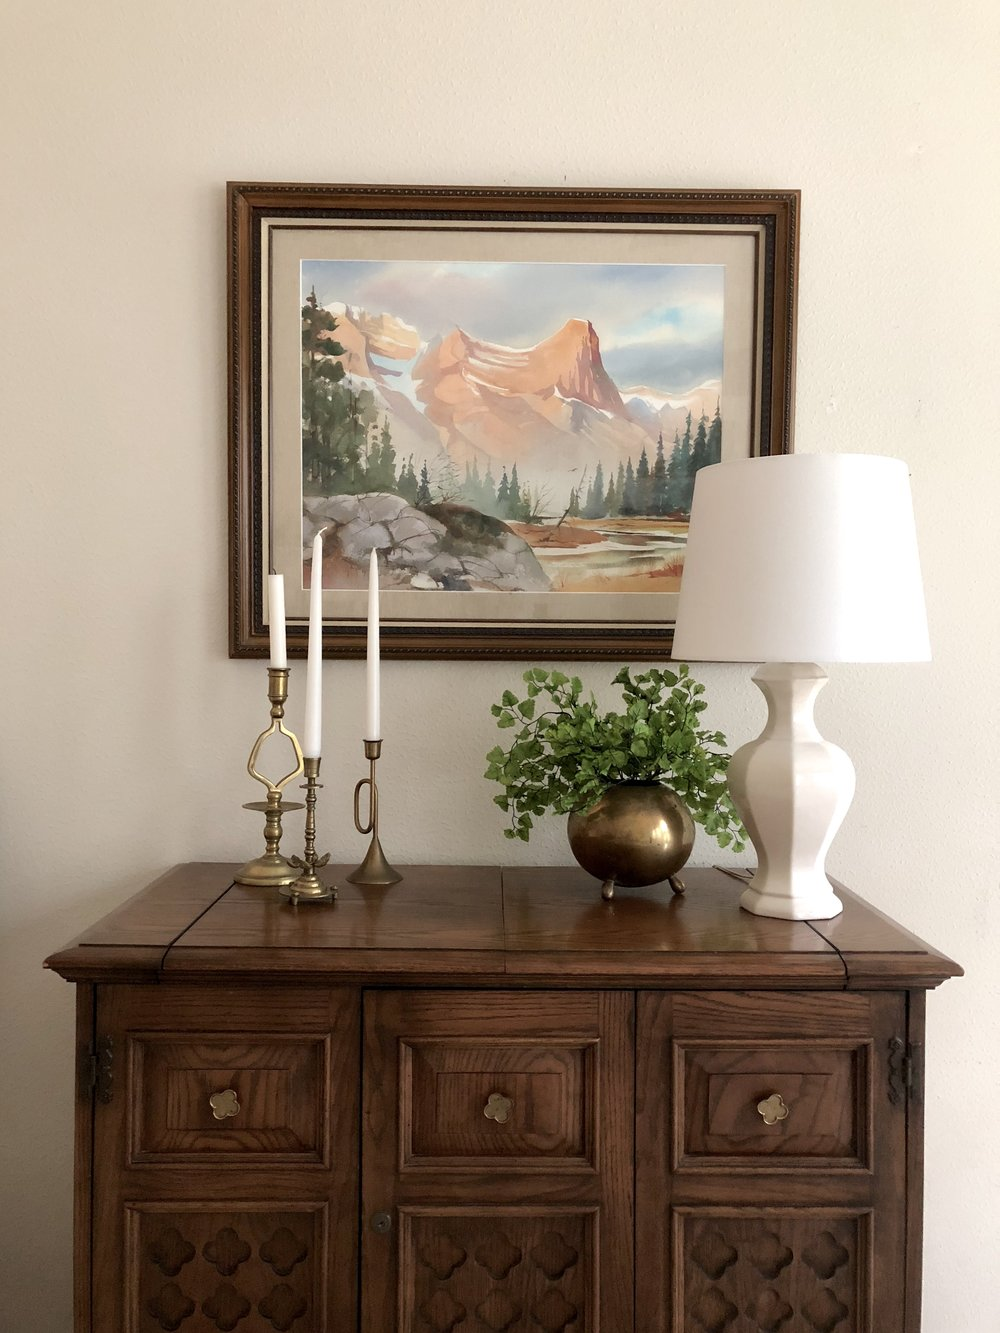 Simple vignette in the house, staged for sale.